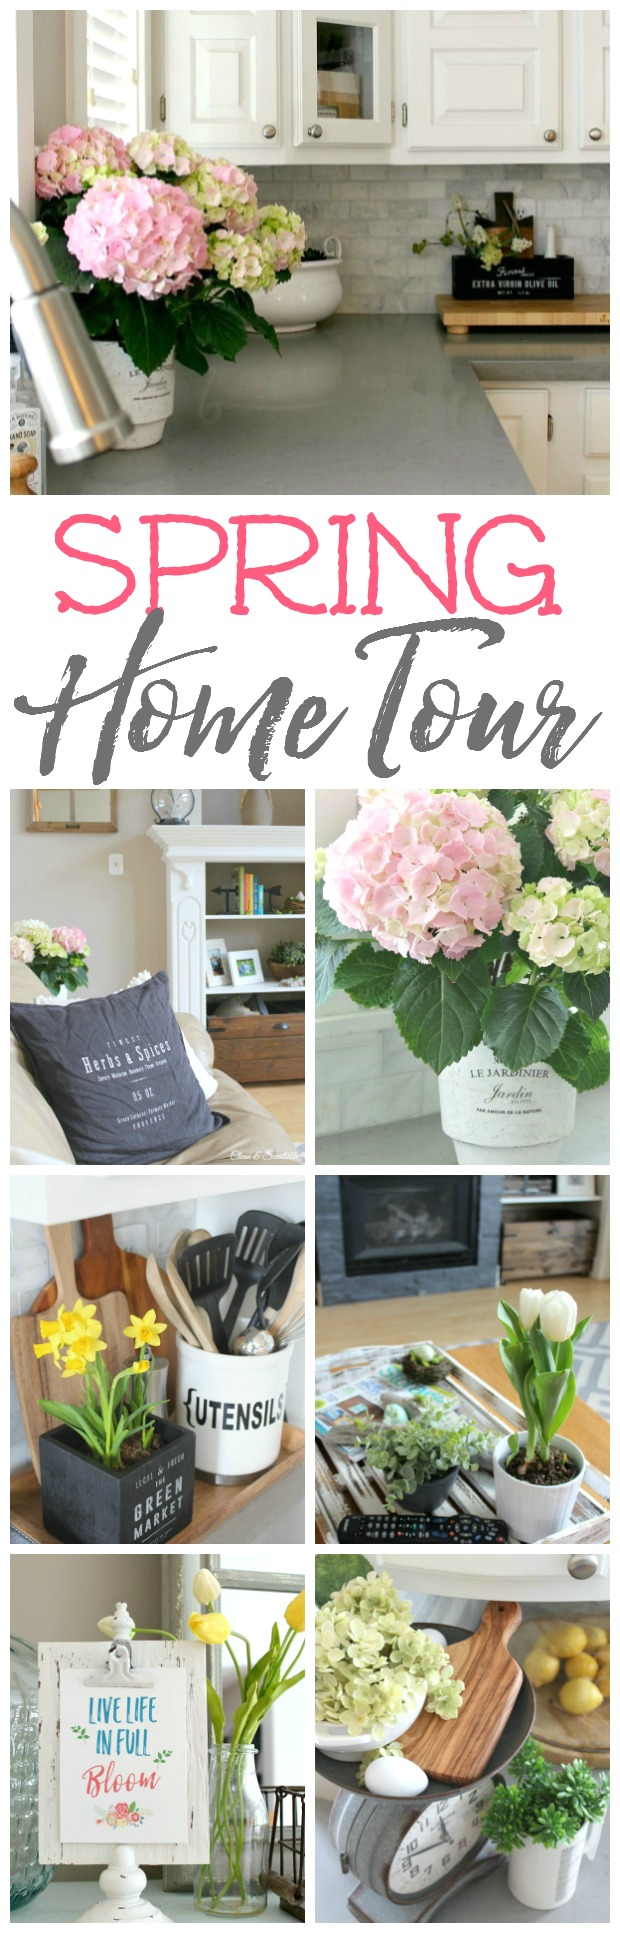 spring home tour - clean and scentsible